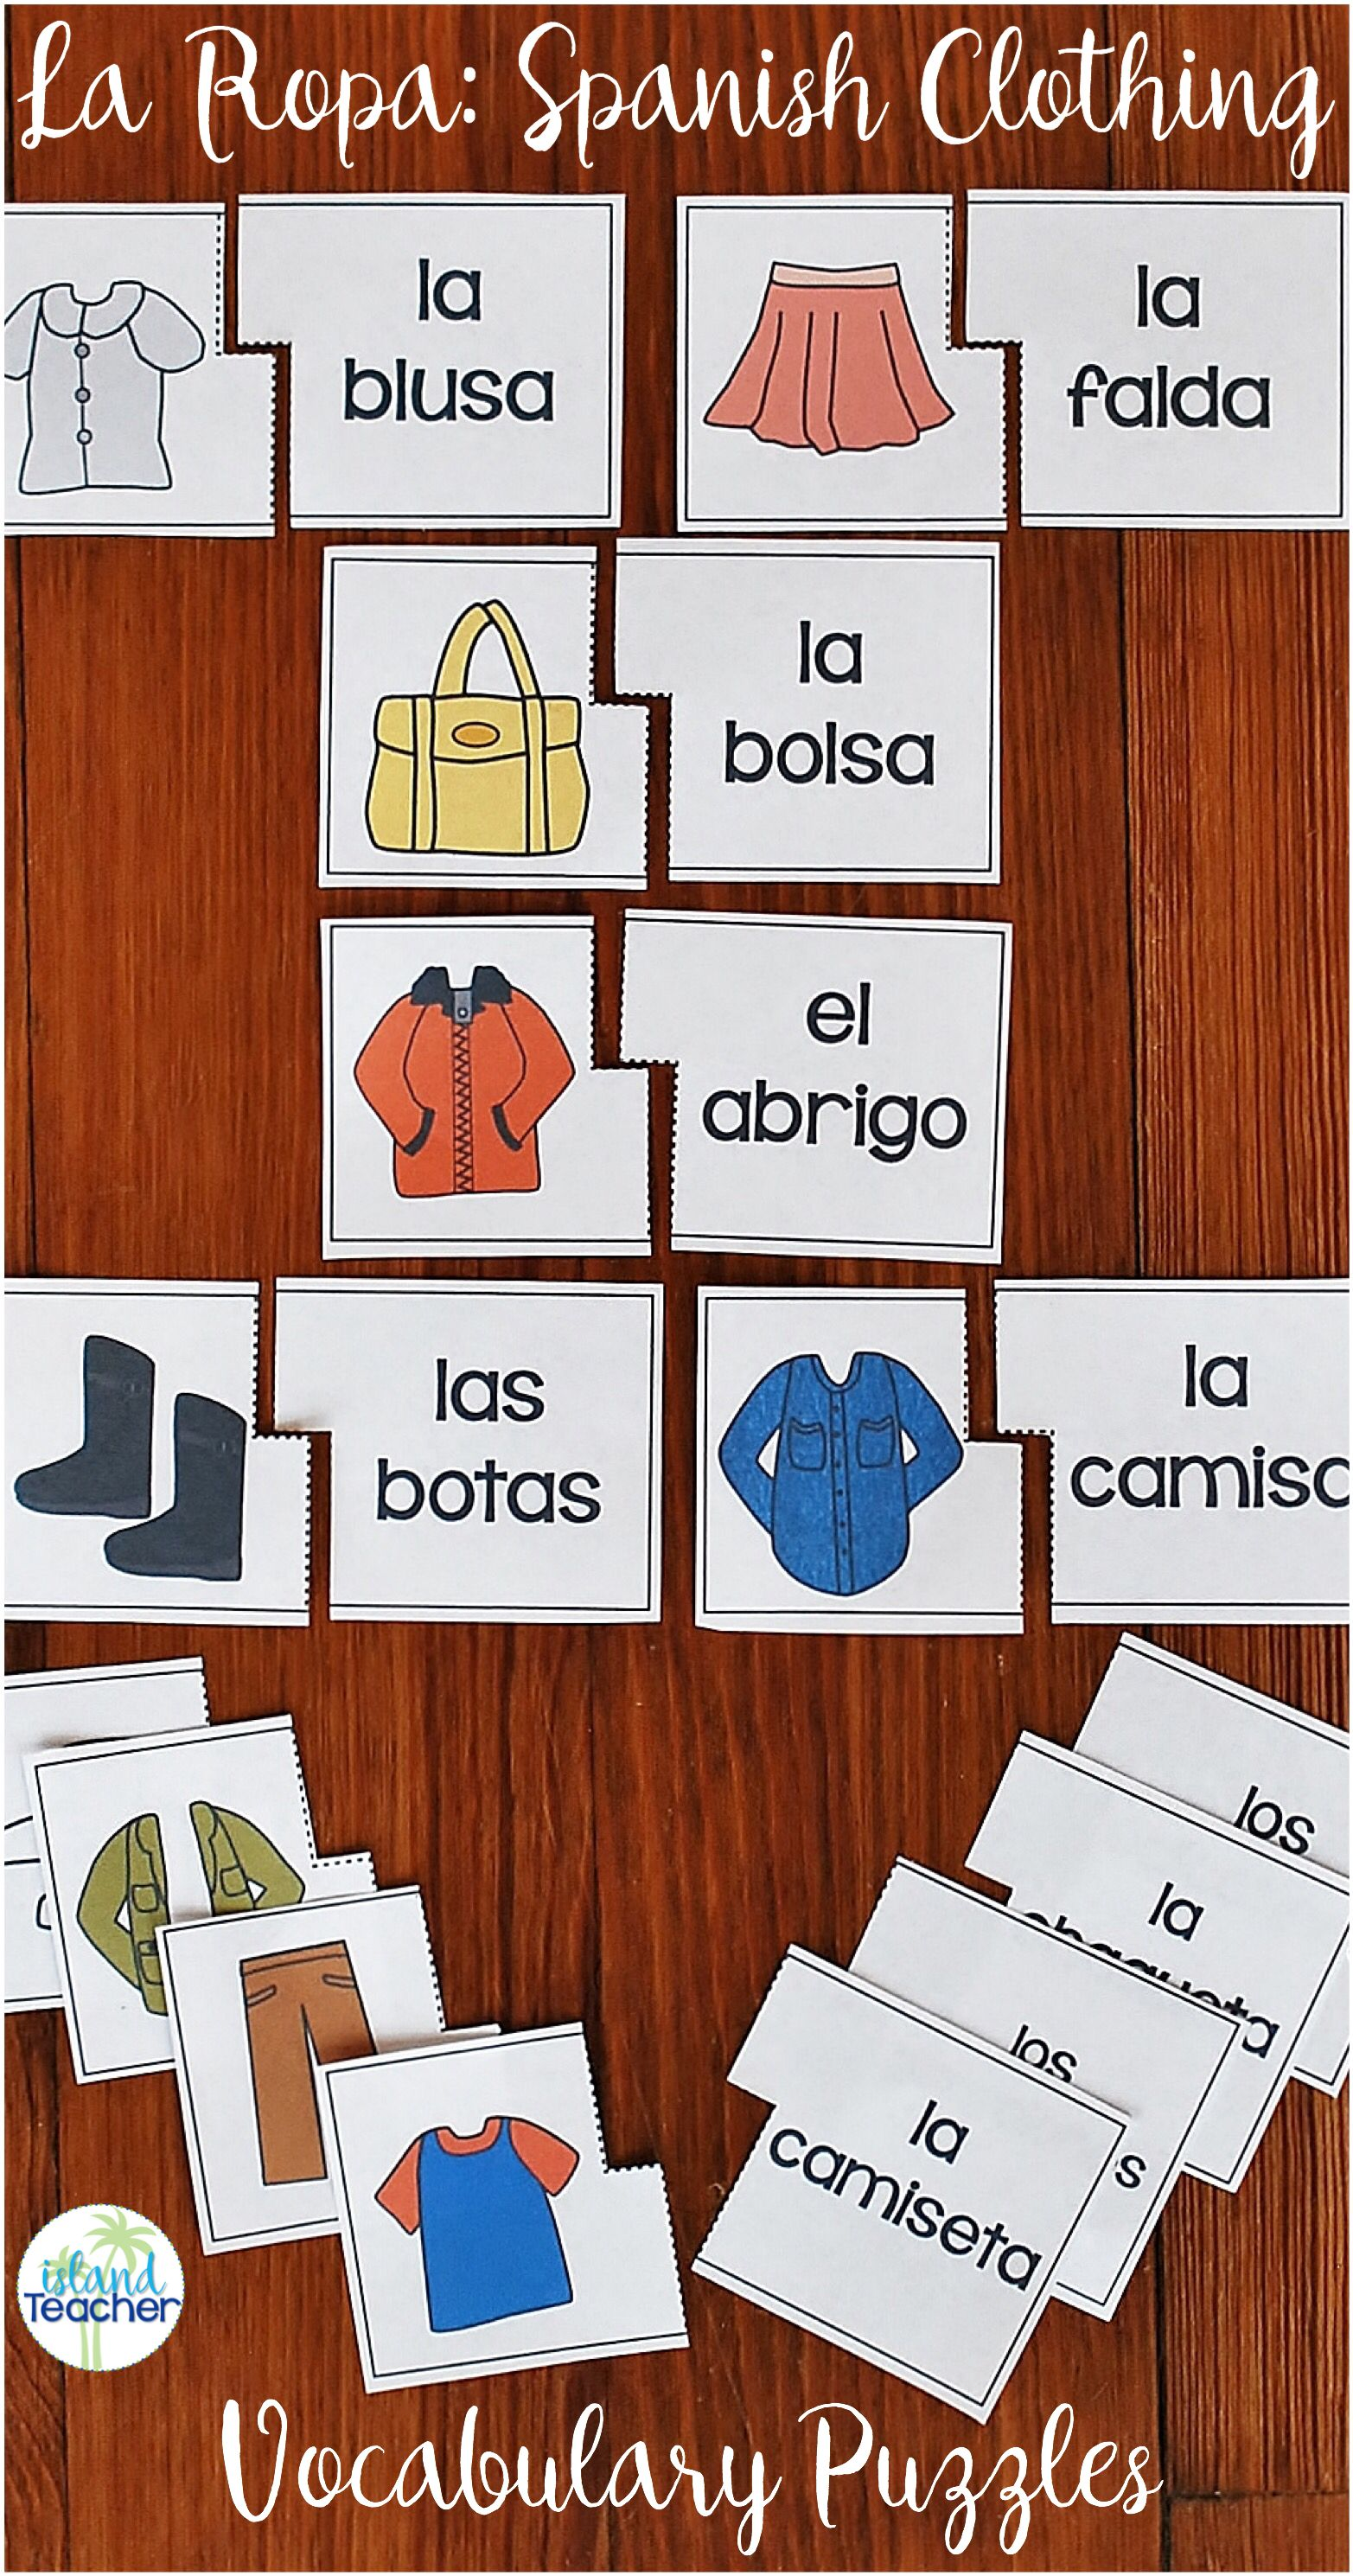 Spanish Clothing Matching Puzzles Includes 2 Versions Color And Black White Along With S Spanish Lessons For Kids Spanish Clothing Learning Spanish For Kids [ 2979 x 1565 Pixel ]